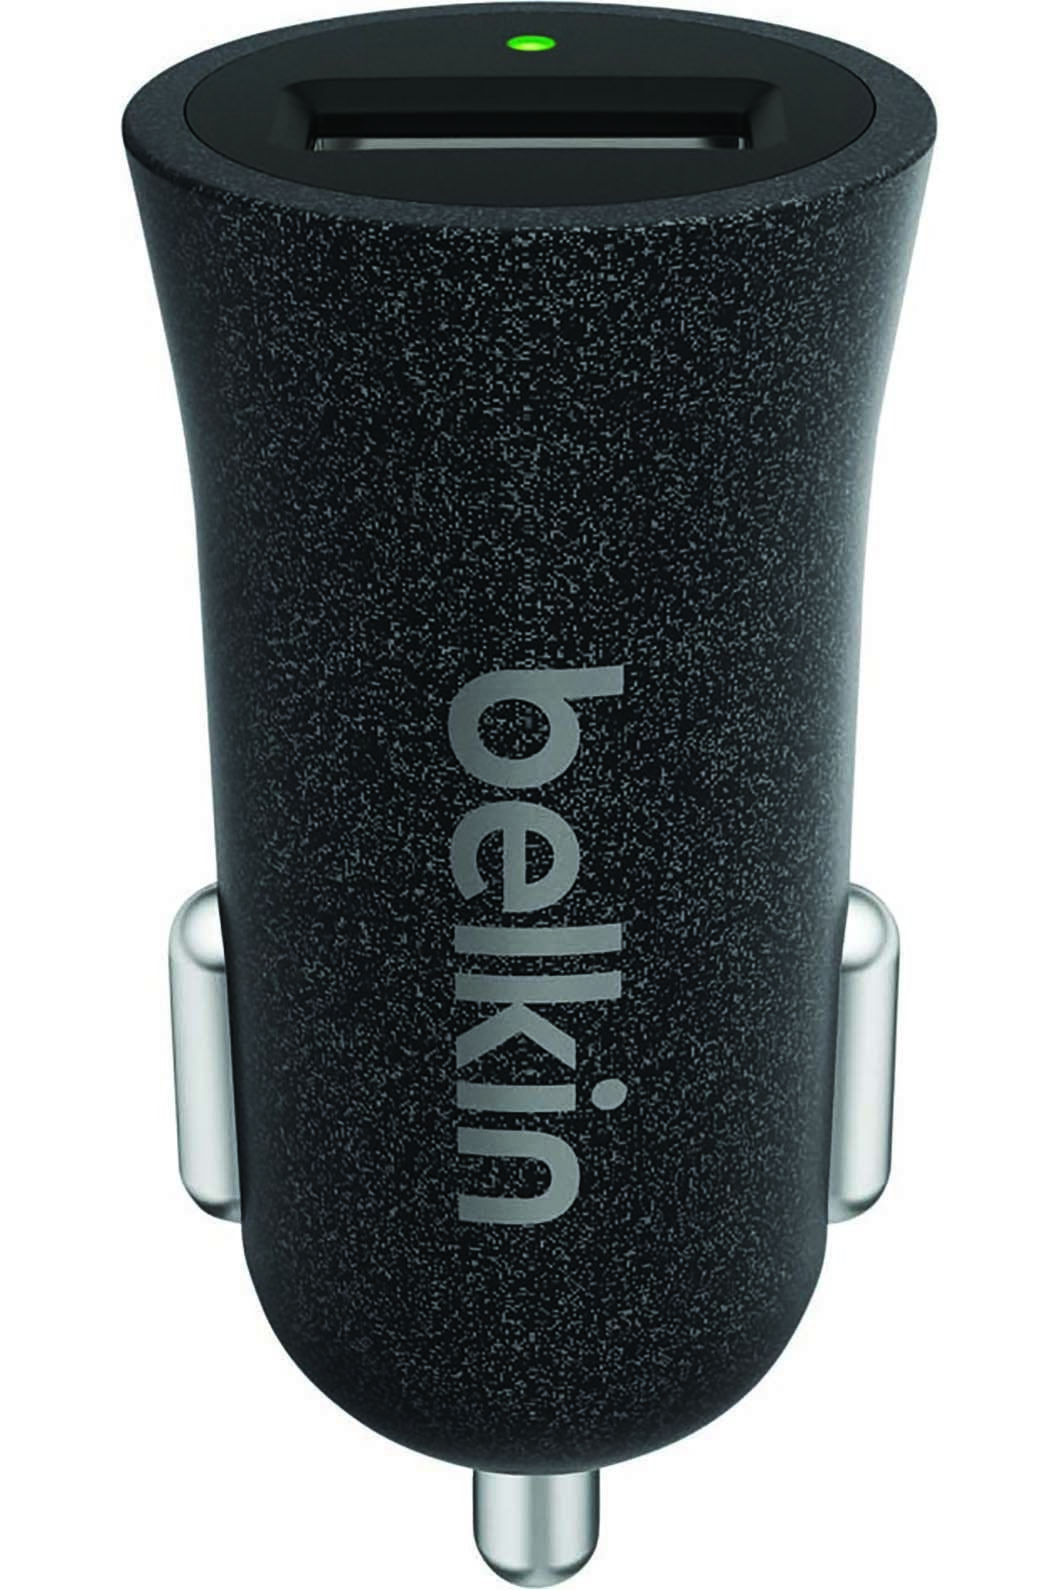 Belkin MIXIT?Metallic Car Charger, None, hi-res